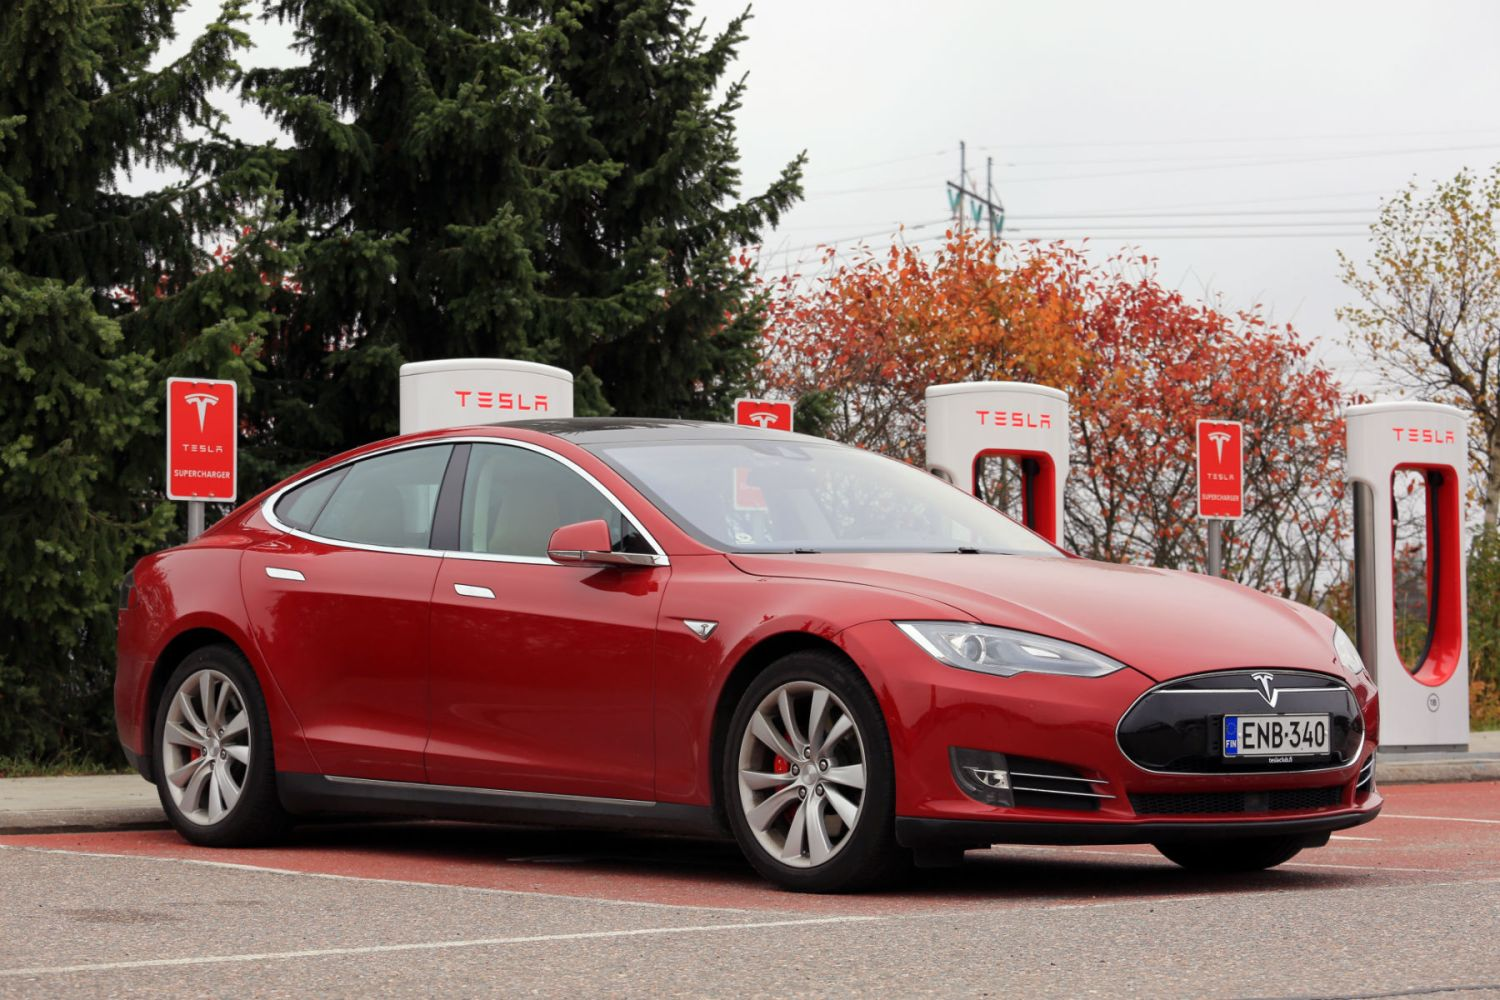 Tesla wants to reinvent the motorway service station